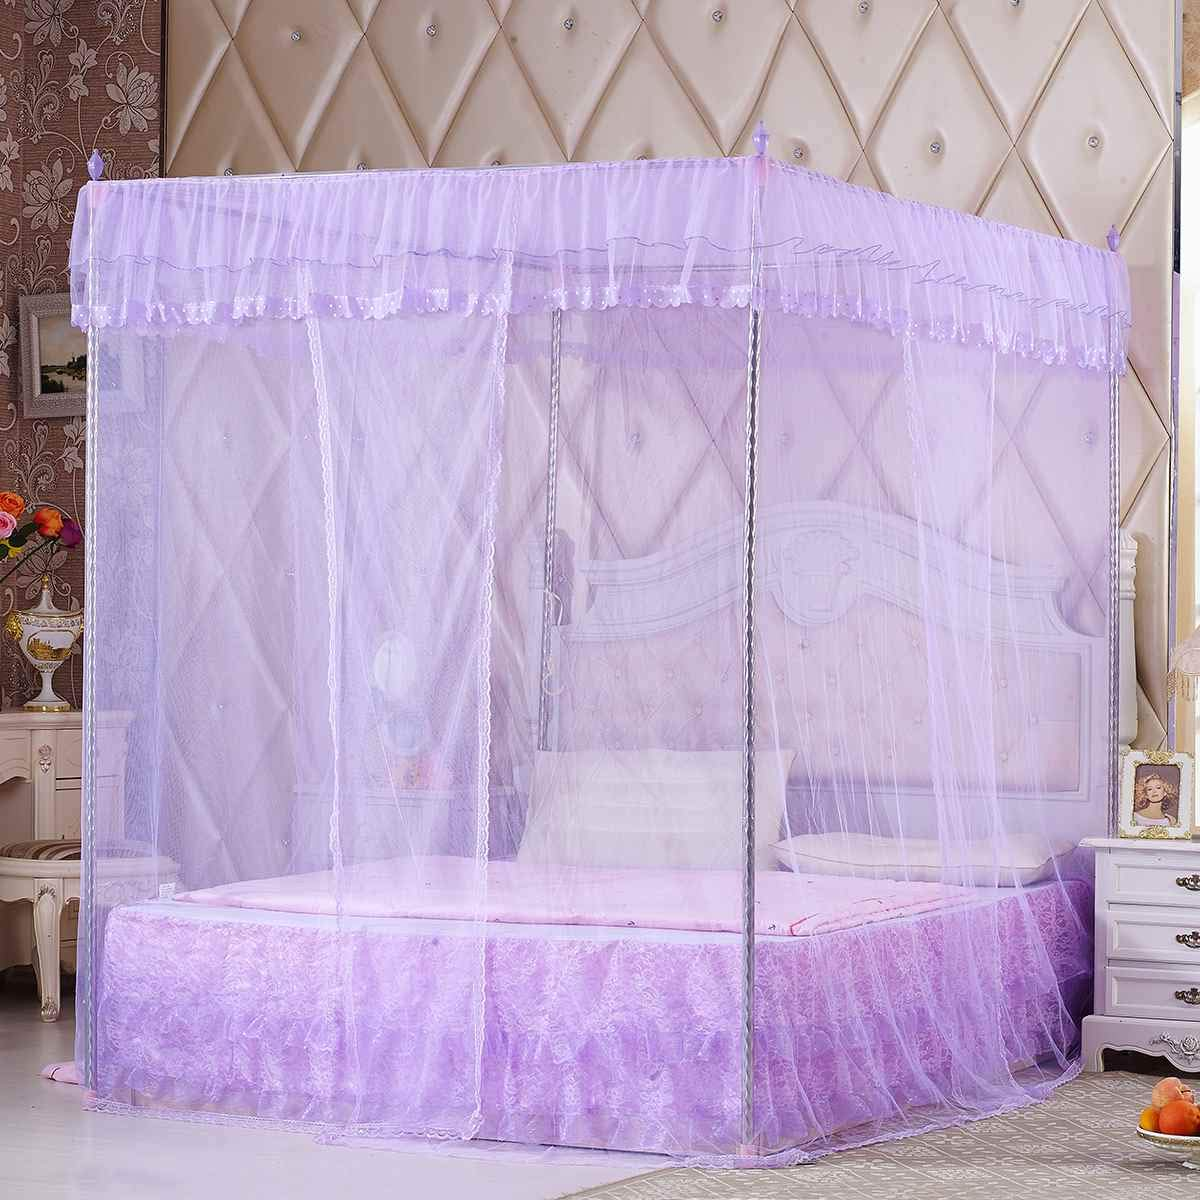 Mosquito Net - Summer Elegant Lace Insect Bed Canopy Netting Curtain Princess Bedding Bug Insect Repeller